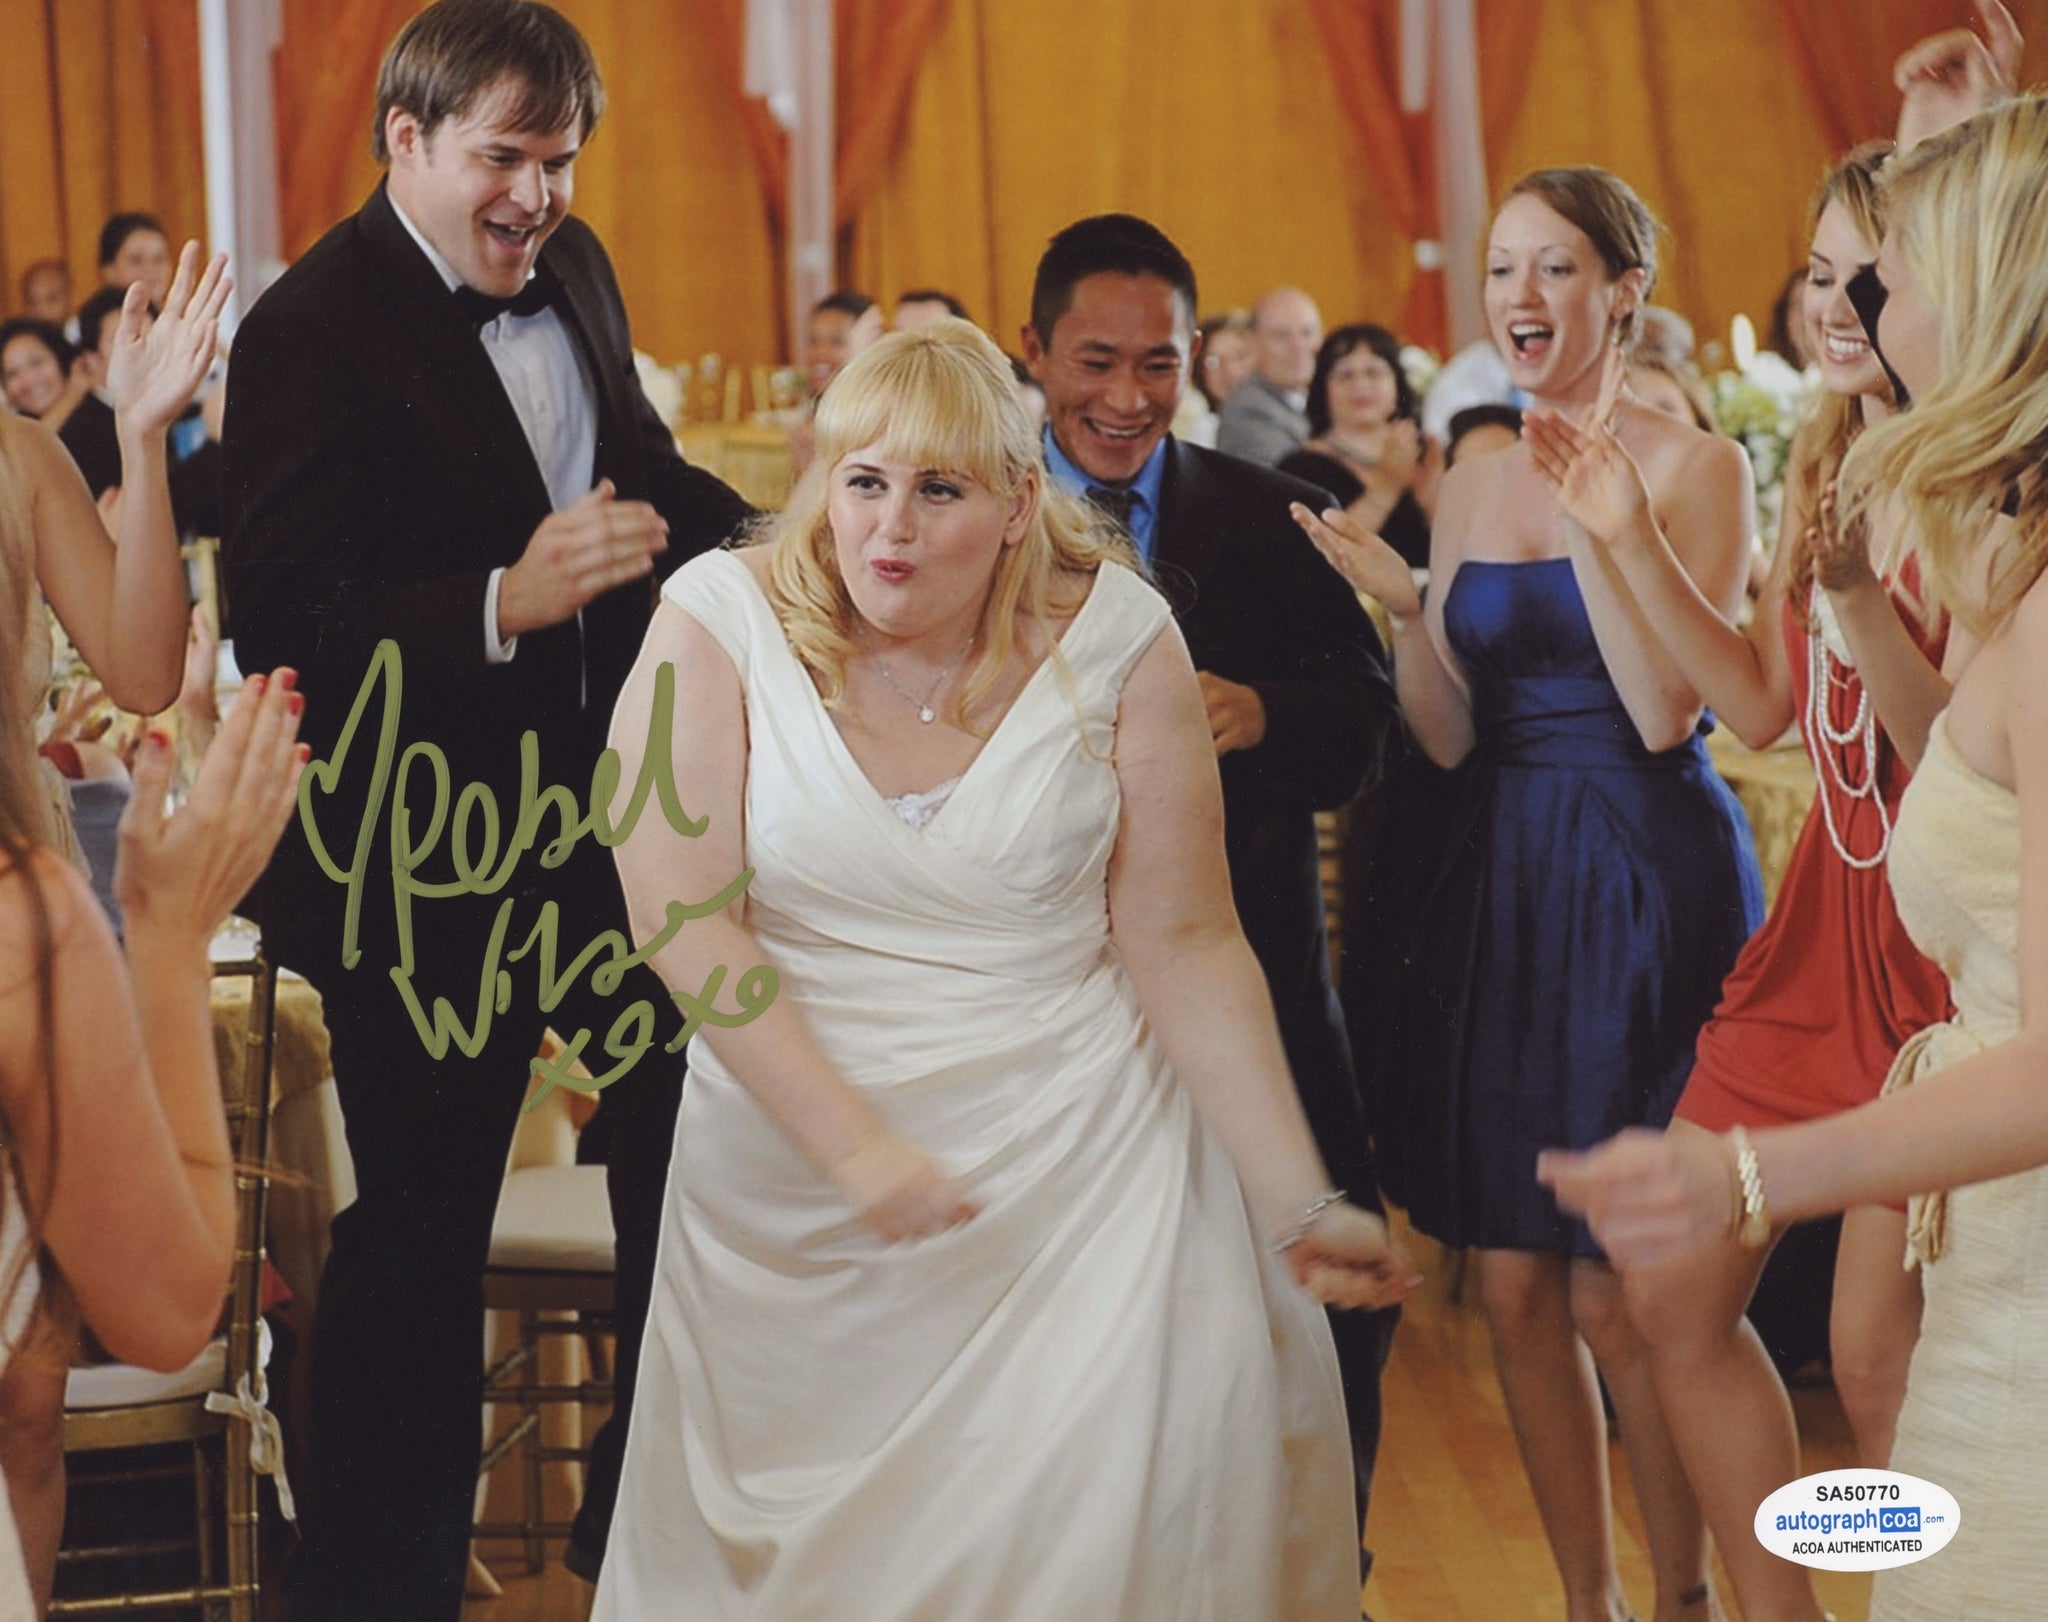 Rebel Wilson Pitch Perfect Signed Autograph 8x10 Photo ACOA